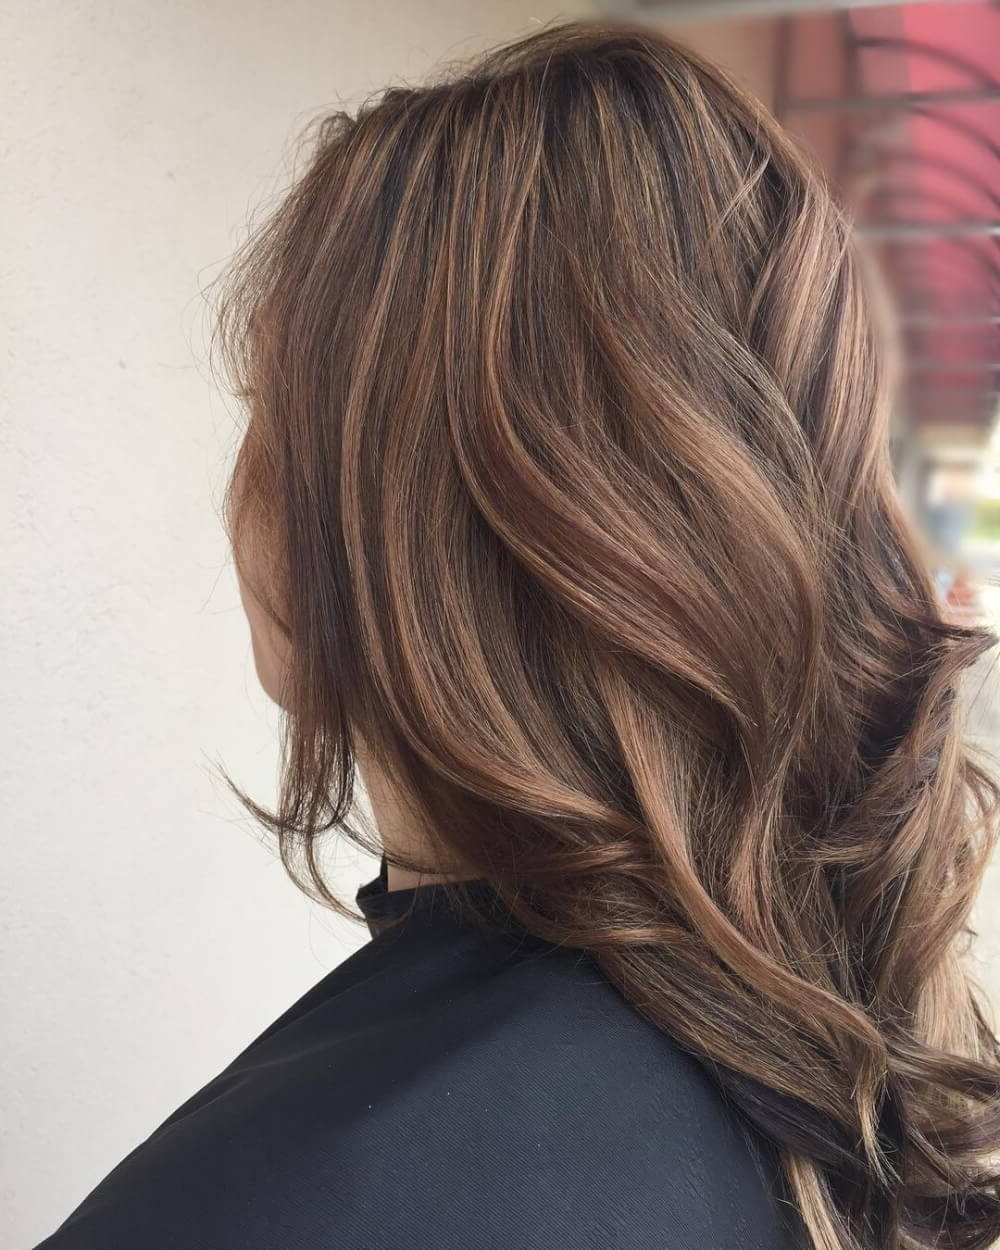 34 Light Brown Hair Colors That Are Blowing Up In 2018 With Golden Brown Thick Curly Bob Hairstyles (View 11 of 20)